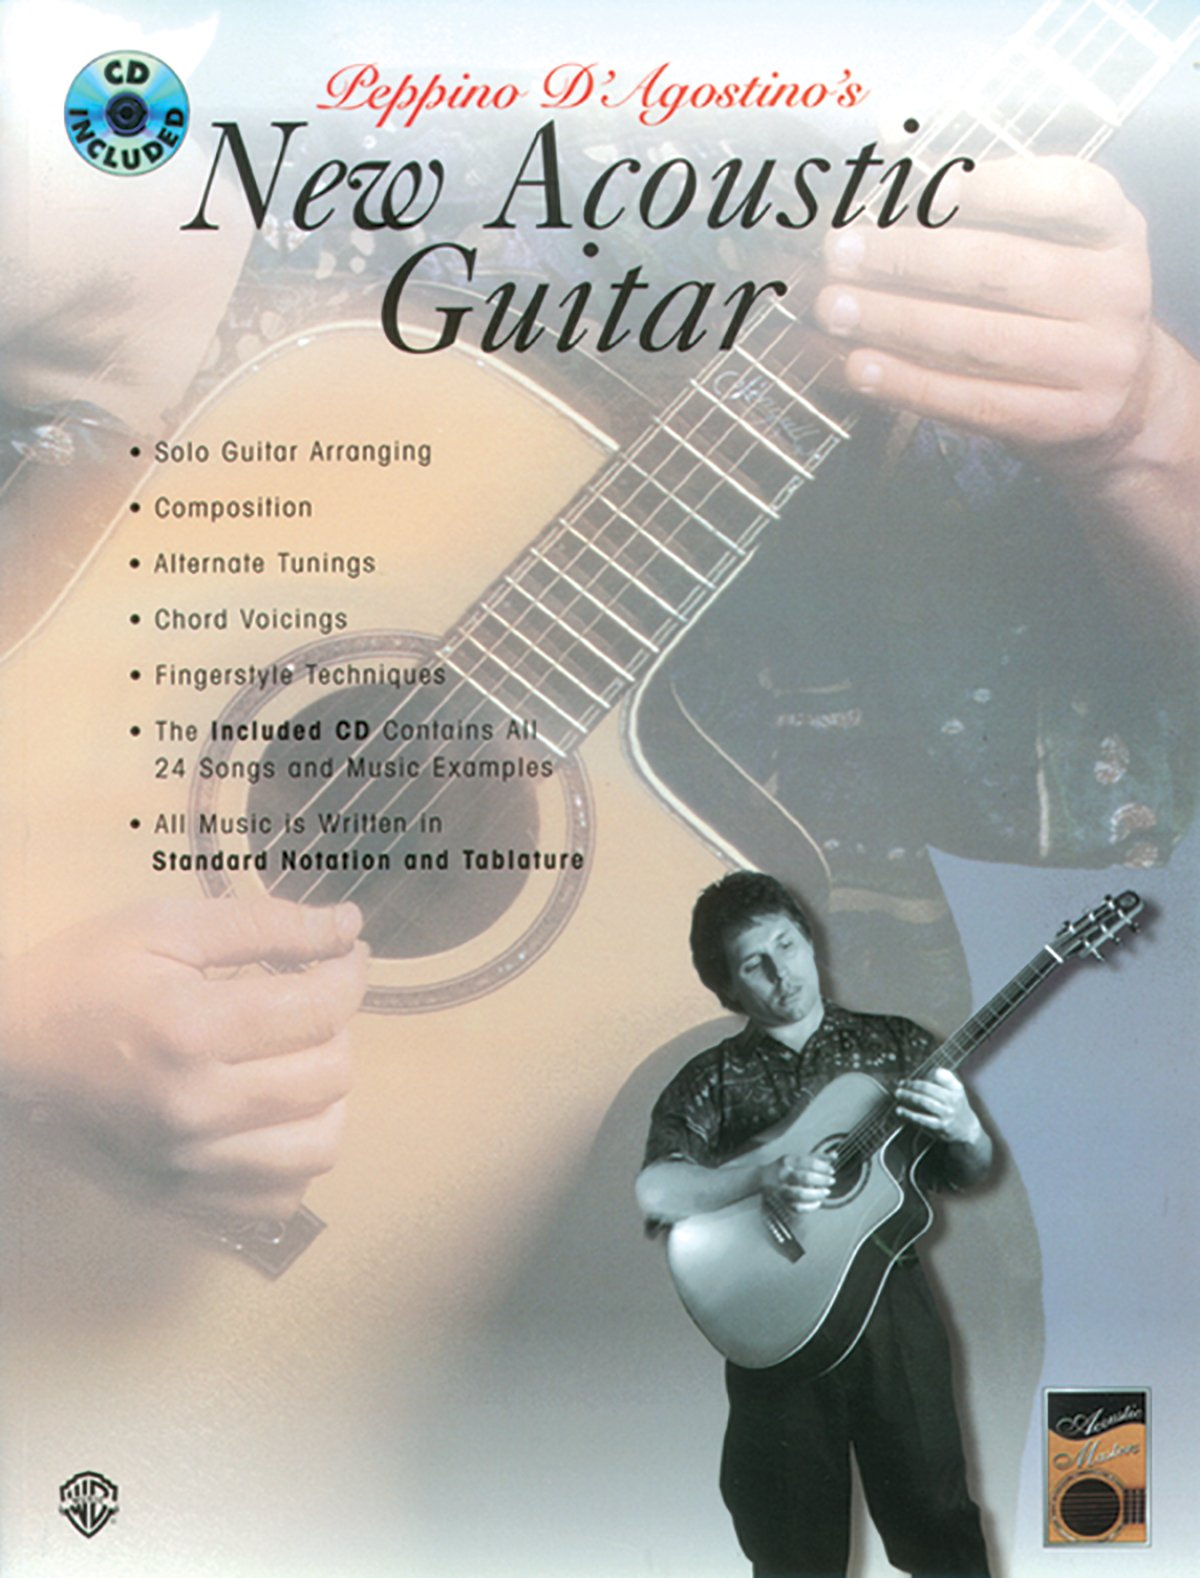 Buy Peppino Dagostinos New Acoustic Guitar Acoustic Masters